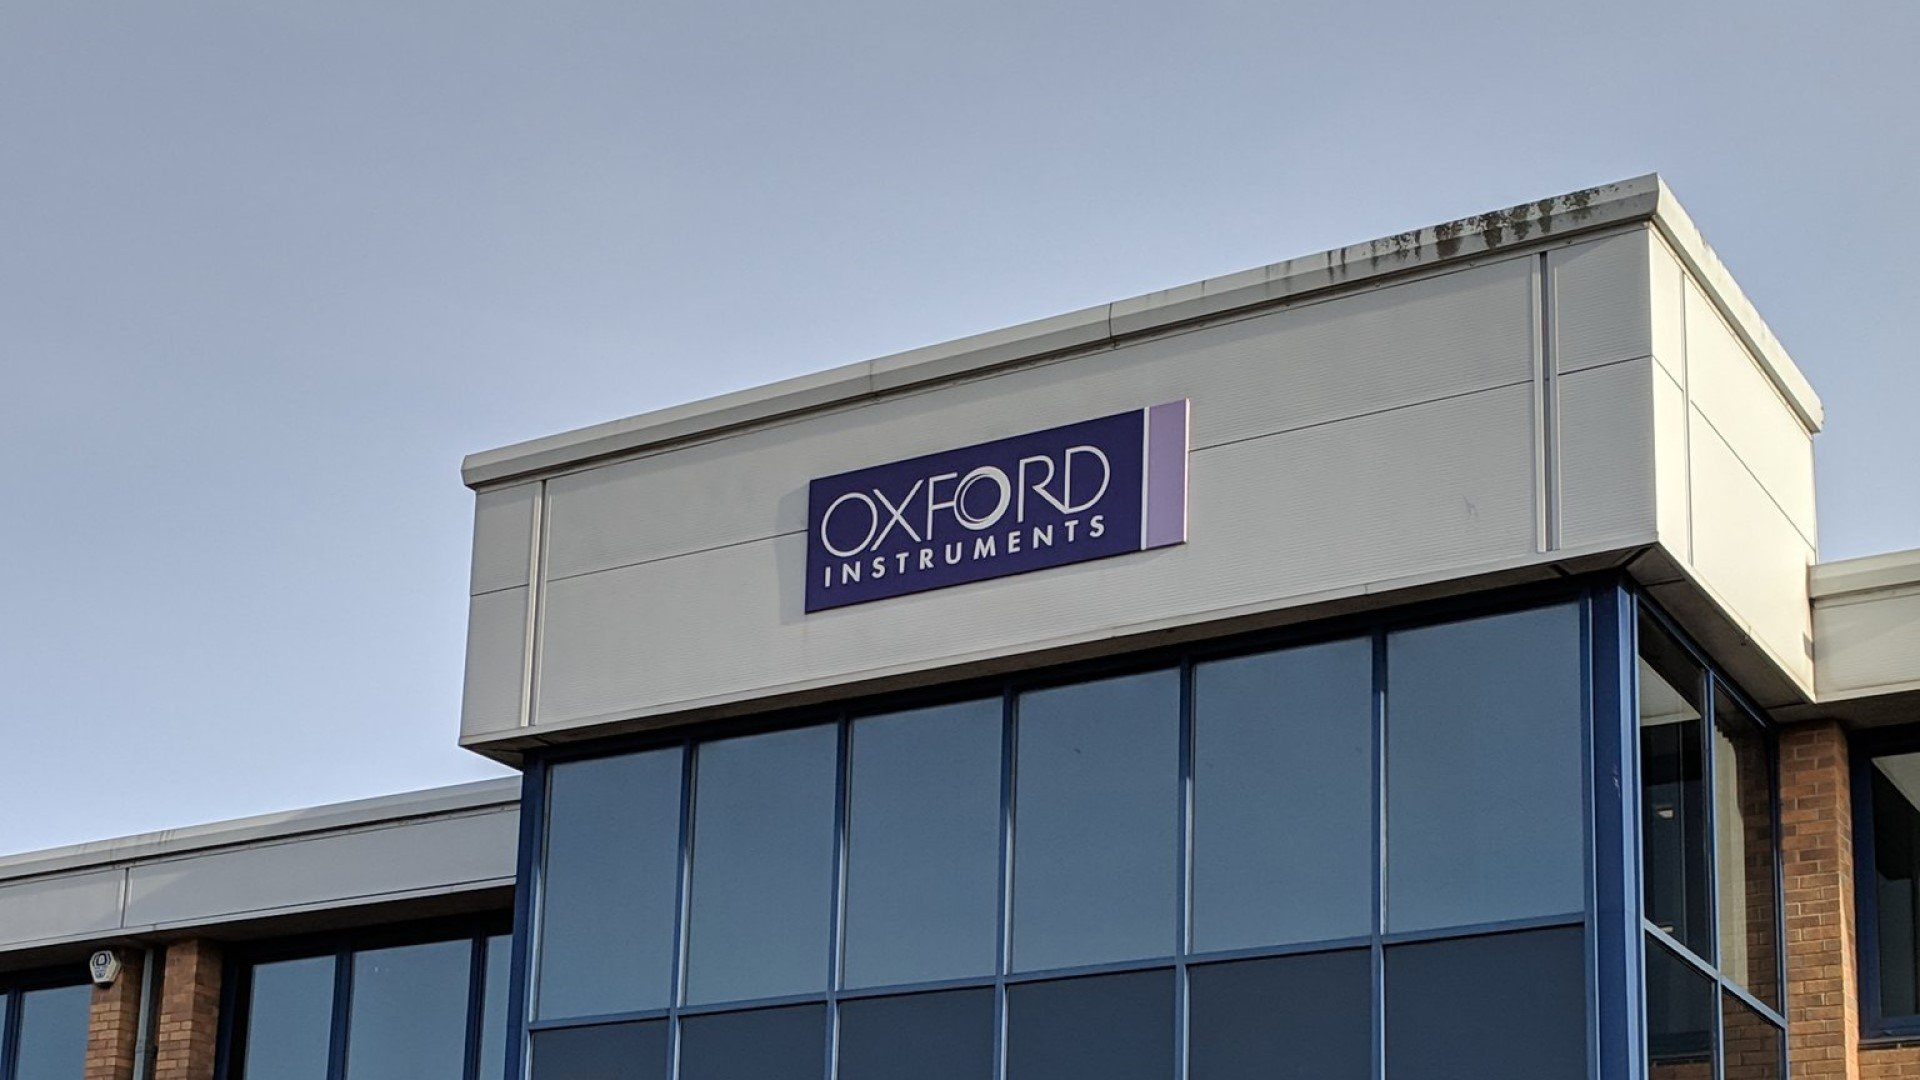 Oxford Instruments completes acquisition of WITec GmbH